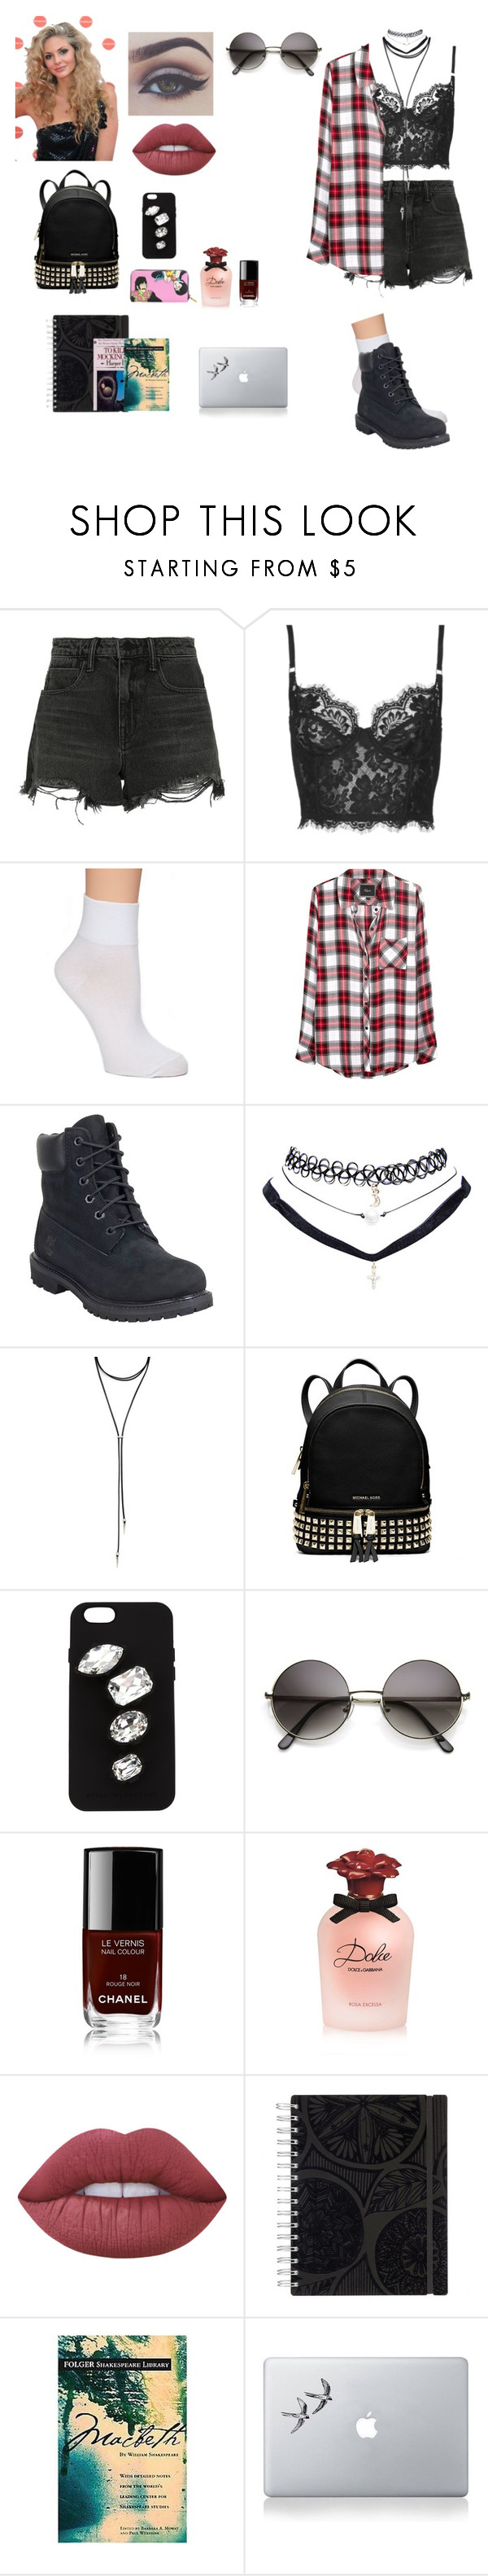 """""""And she's watching him with those eyes"""" by misslillysavage on Polyvore featuring Alexander Wang, Topshop, Hue, Rails, Timberland, Wet Seal, Forever 21, MICHAEL Michael Kors, Bellezza and STELLA McCARTNEY"""